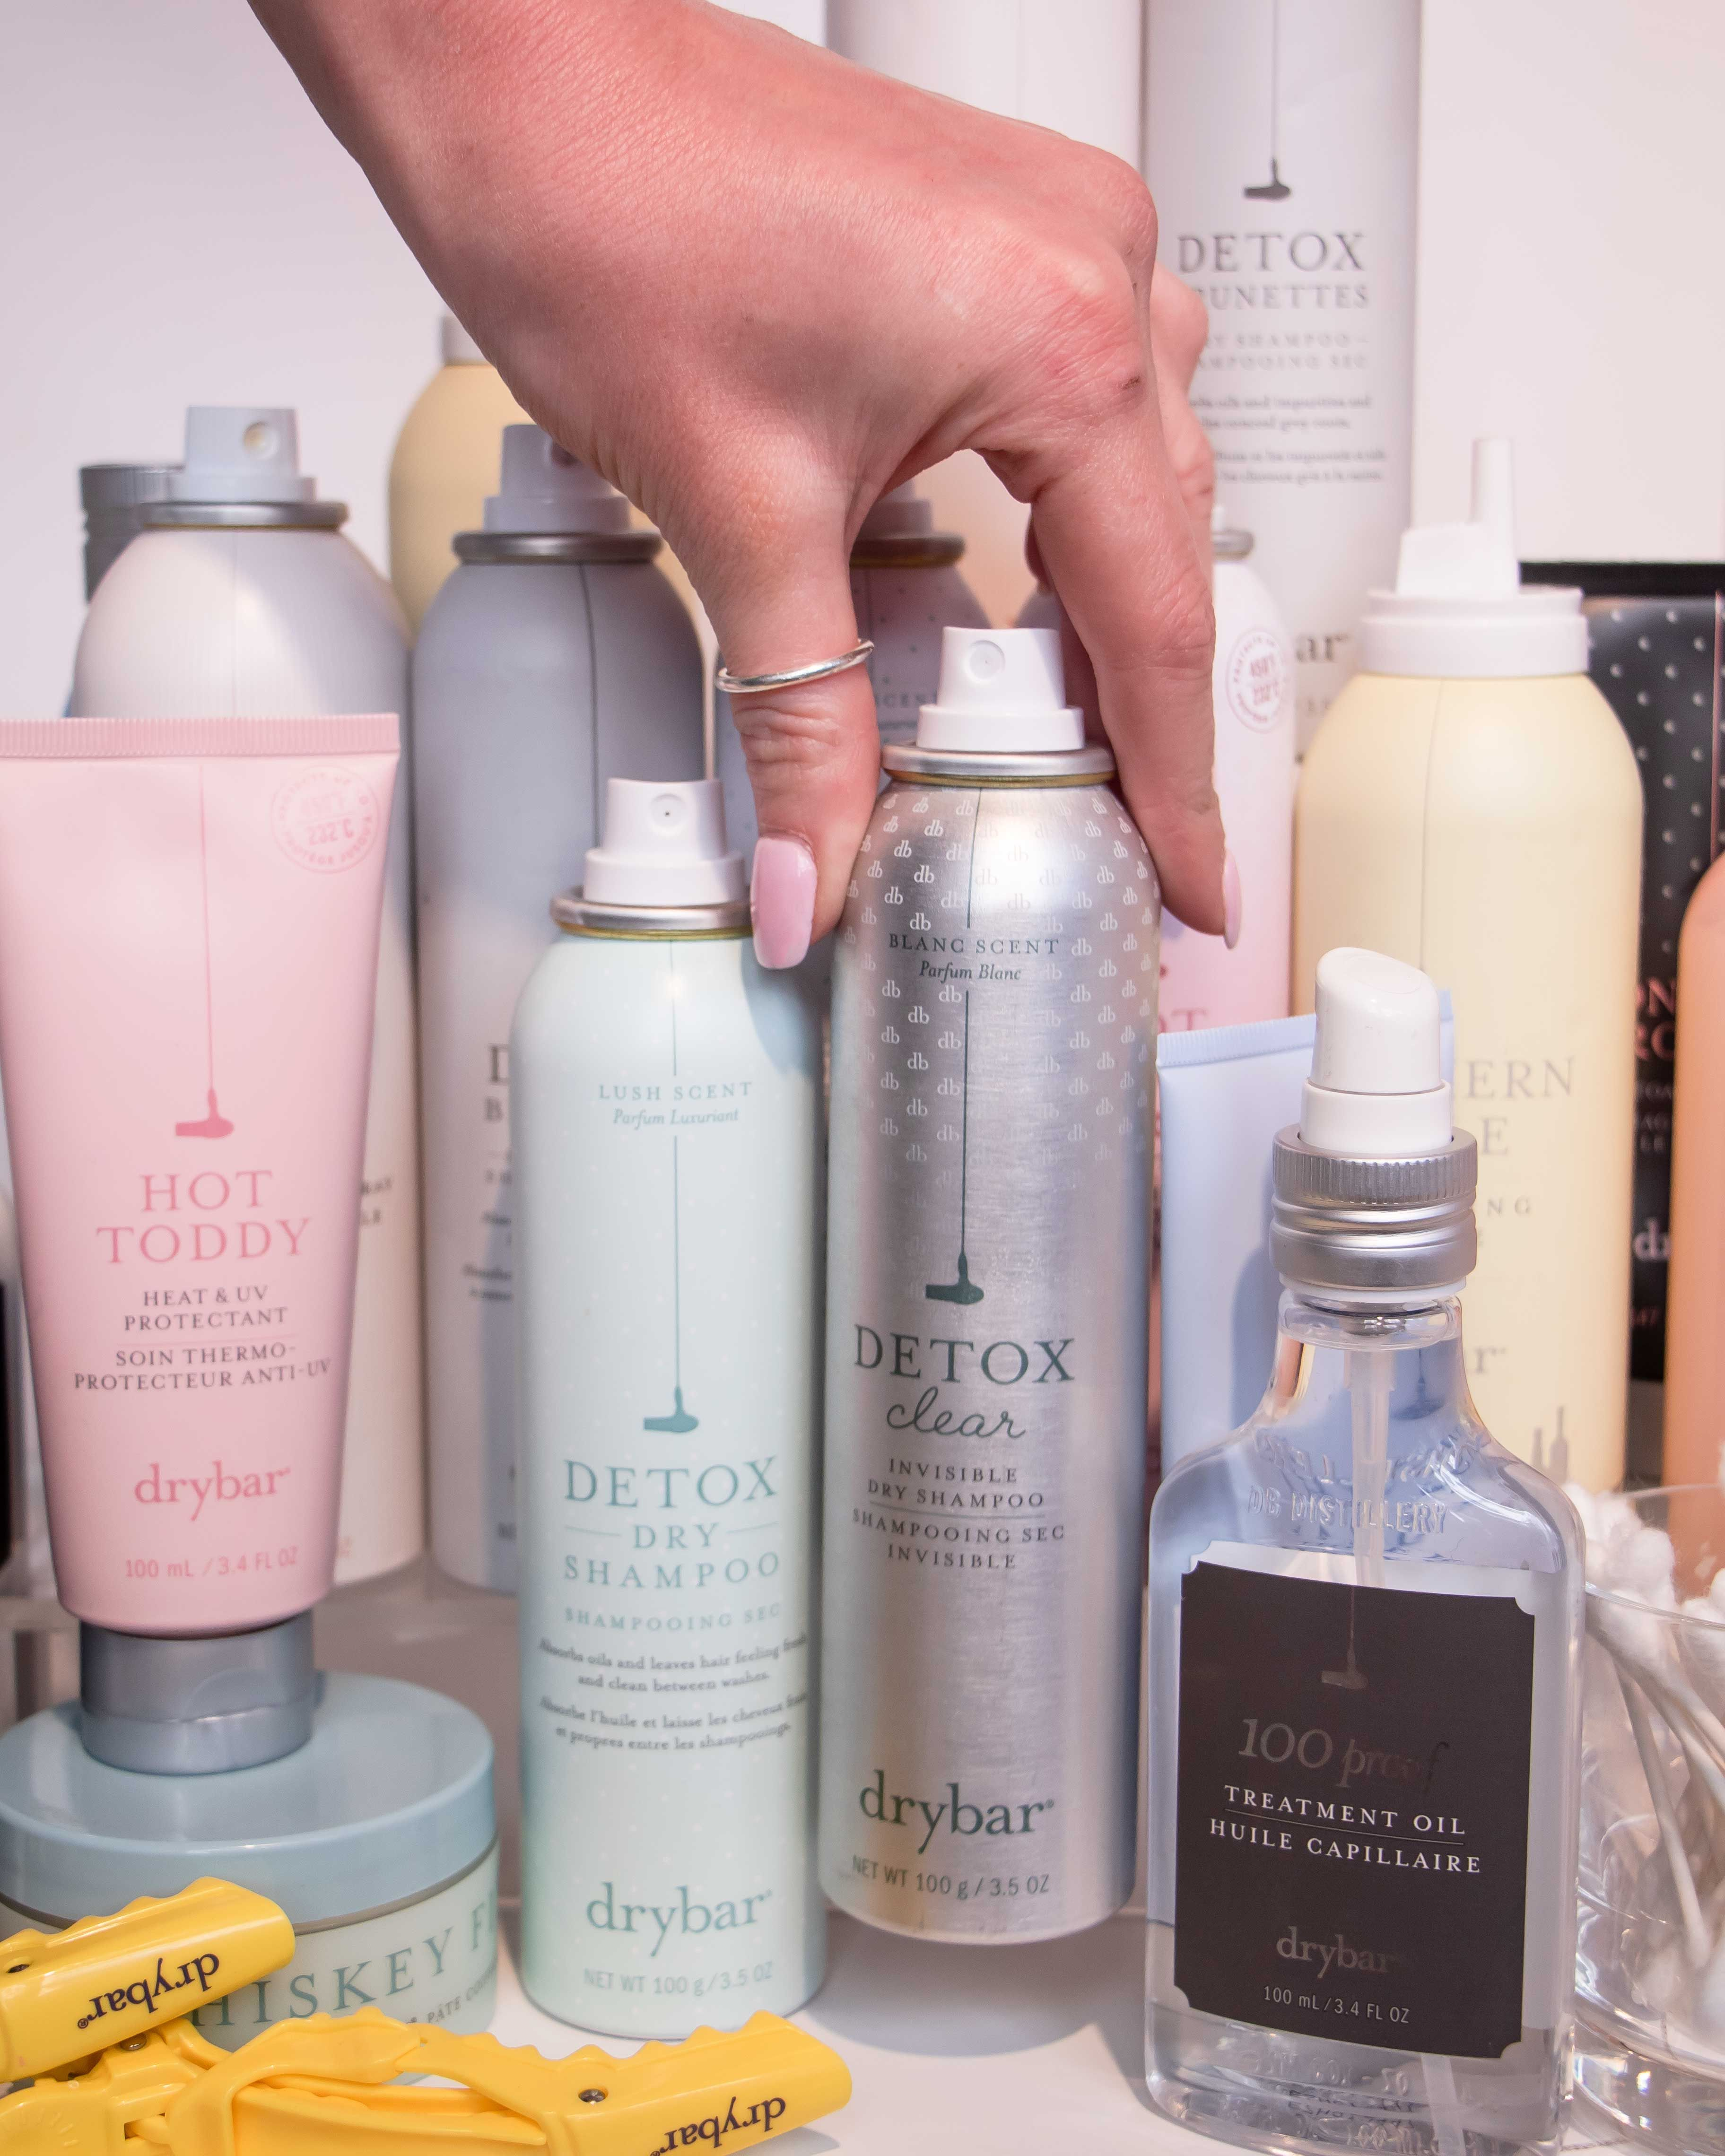 Detox Clear Invisible Dry Shampoo Dry Conditioner Dry Shampoo Hair Care Products Professional